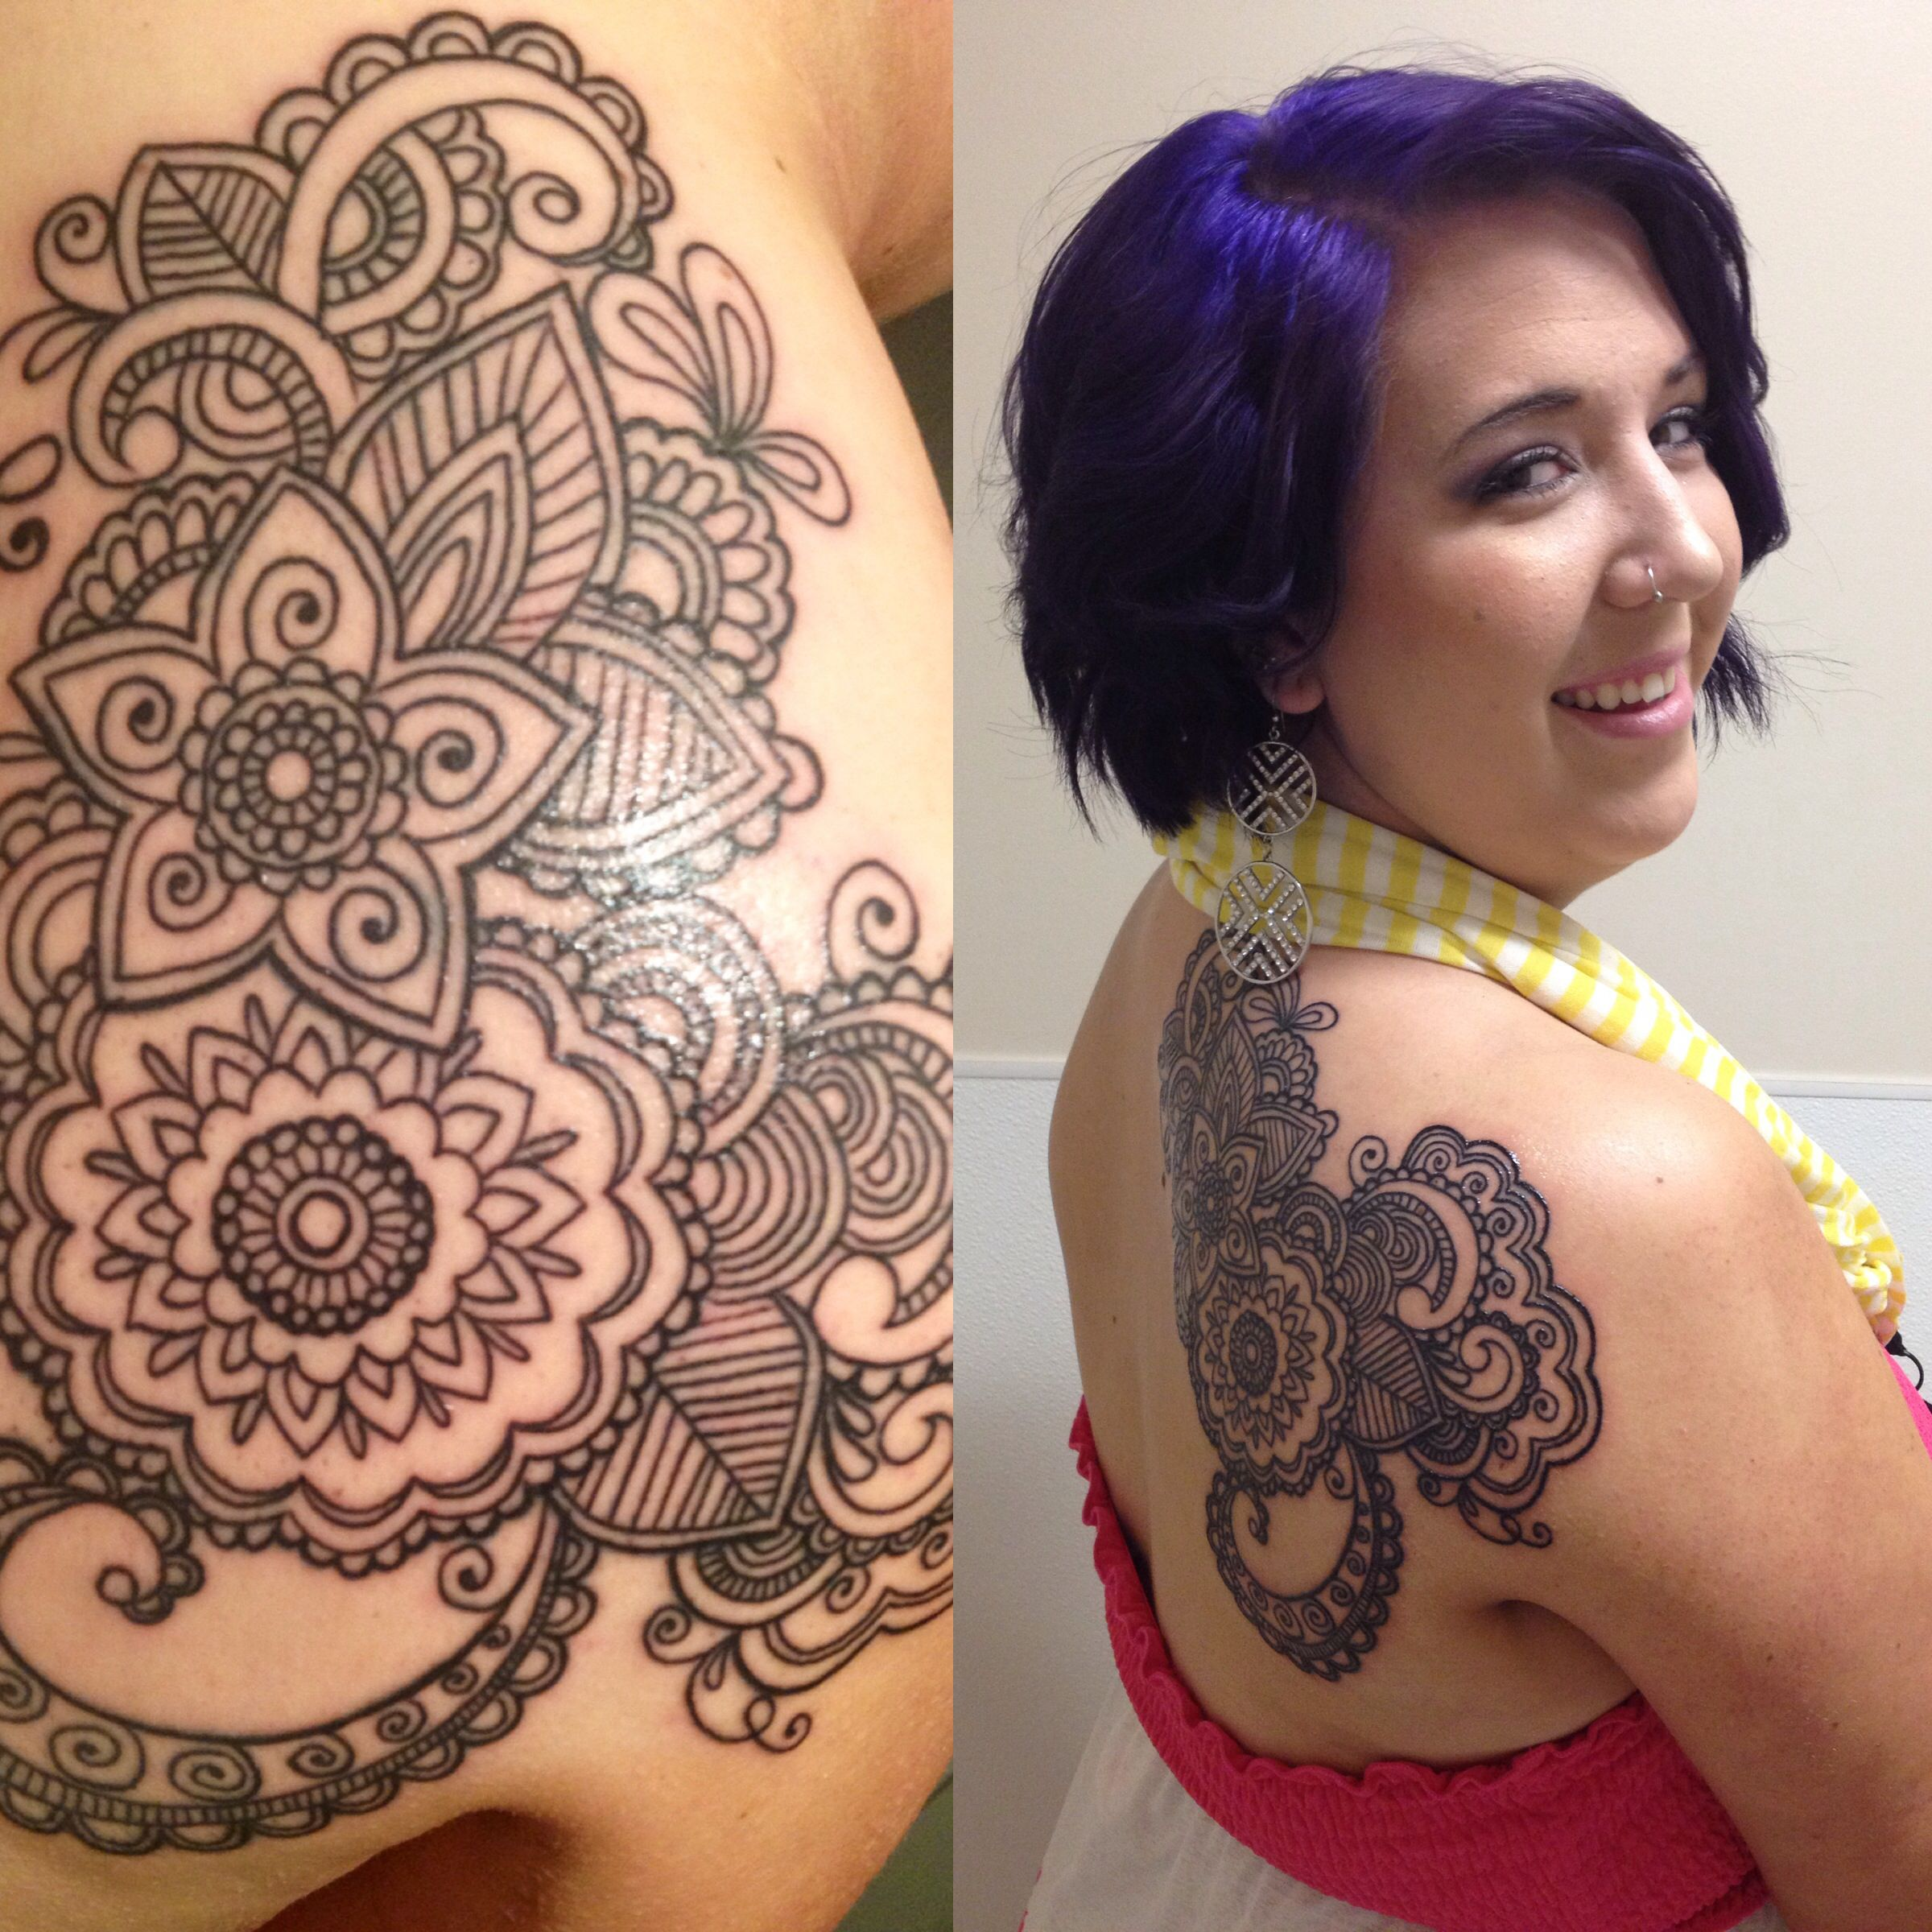 Tattoos arabesque tattoos arabeske tattoos arabesk tattoos - This Is My Beautiful Lace Paisley Tattoo Reminds Me How Beautiful This World Is And How Strong I Am Shoulder Tattoo Lace Tattoo Paisley Tattoo